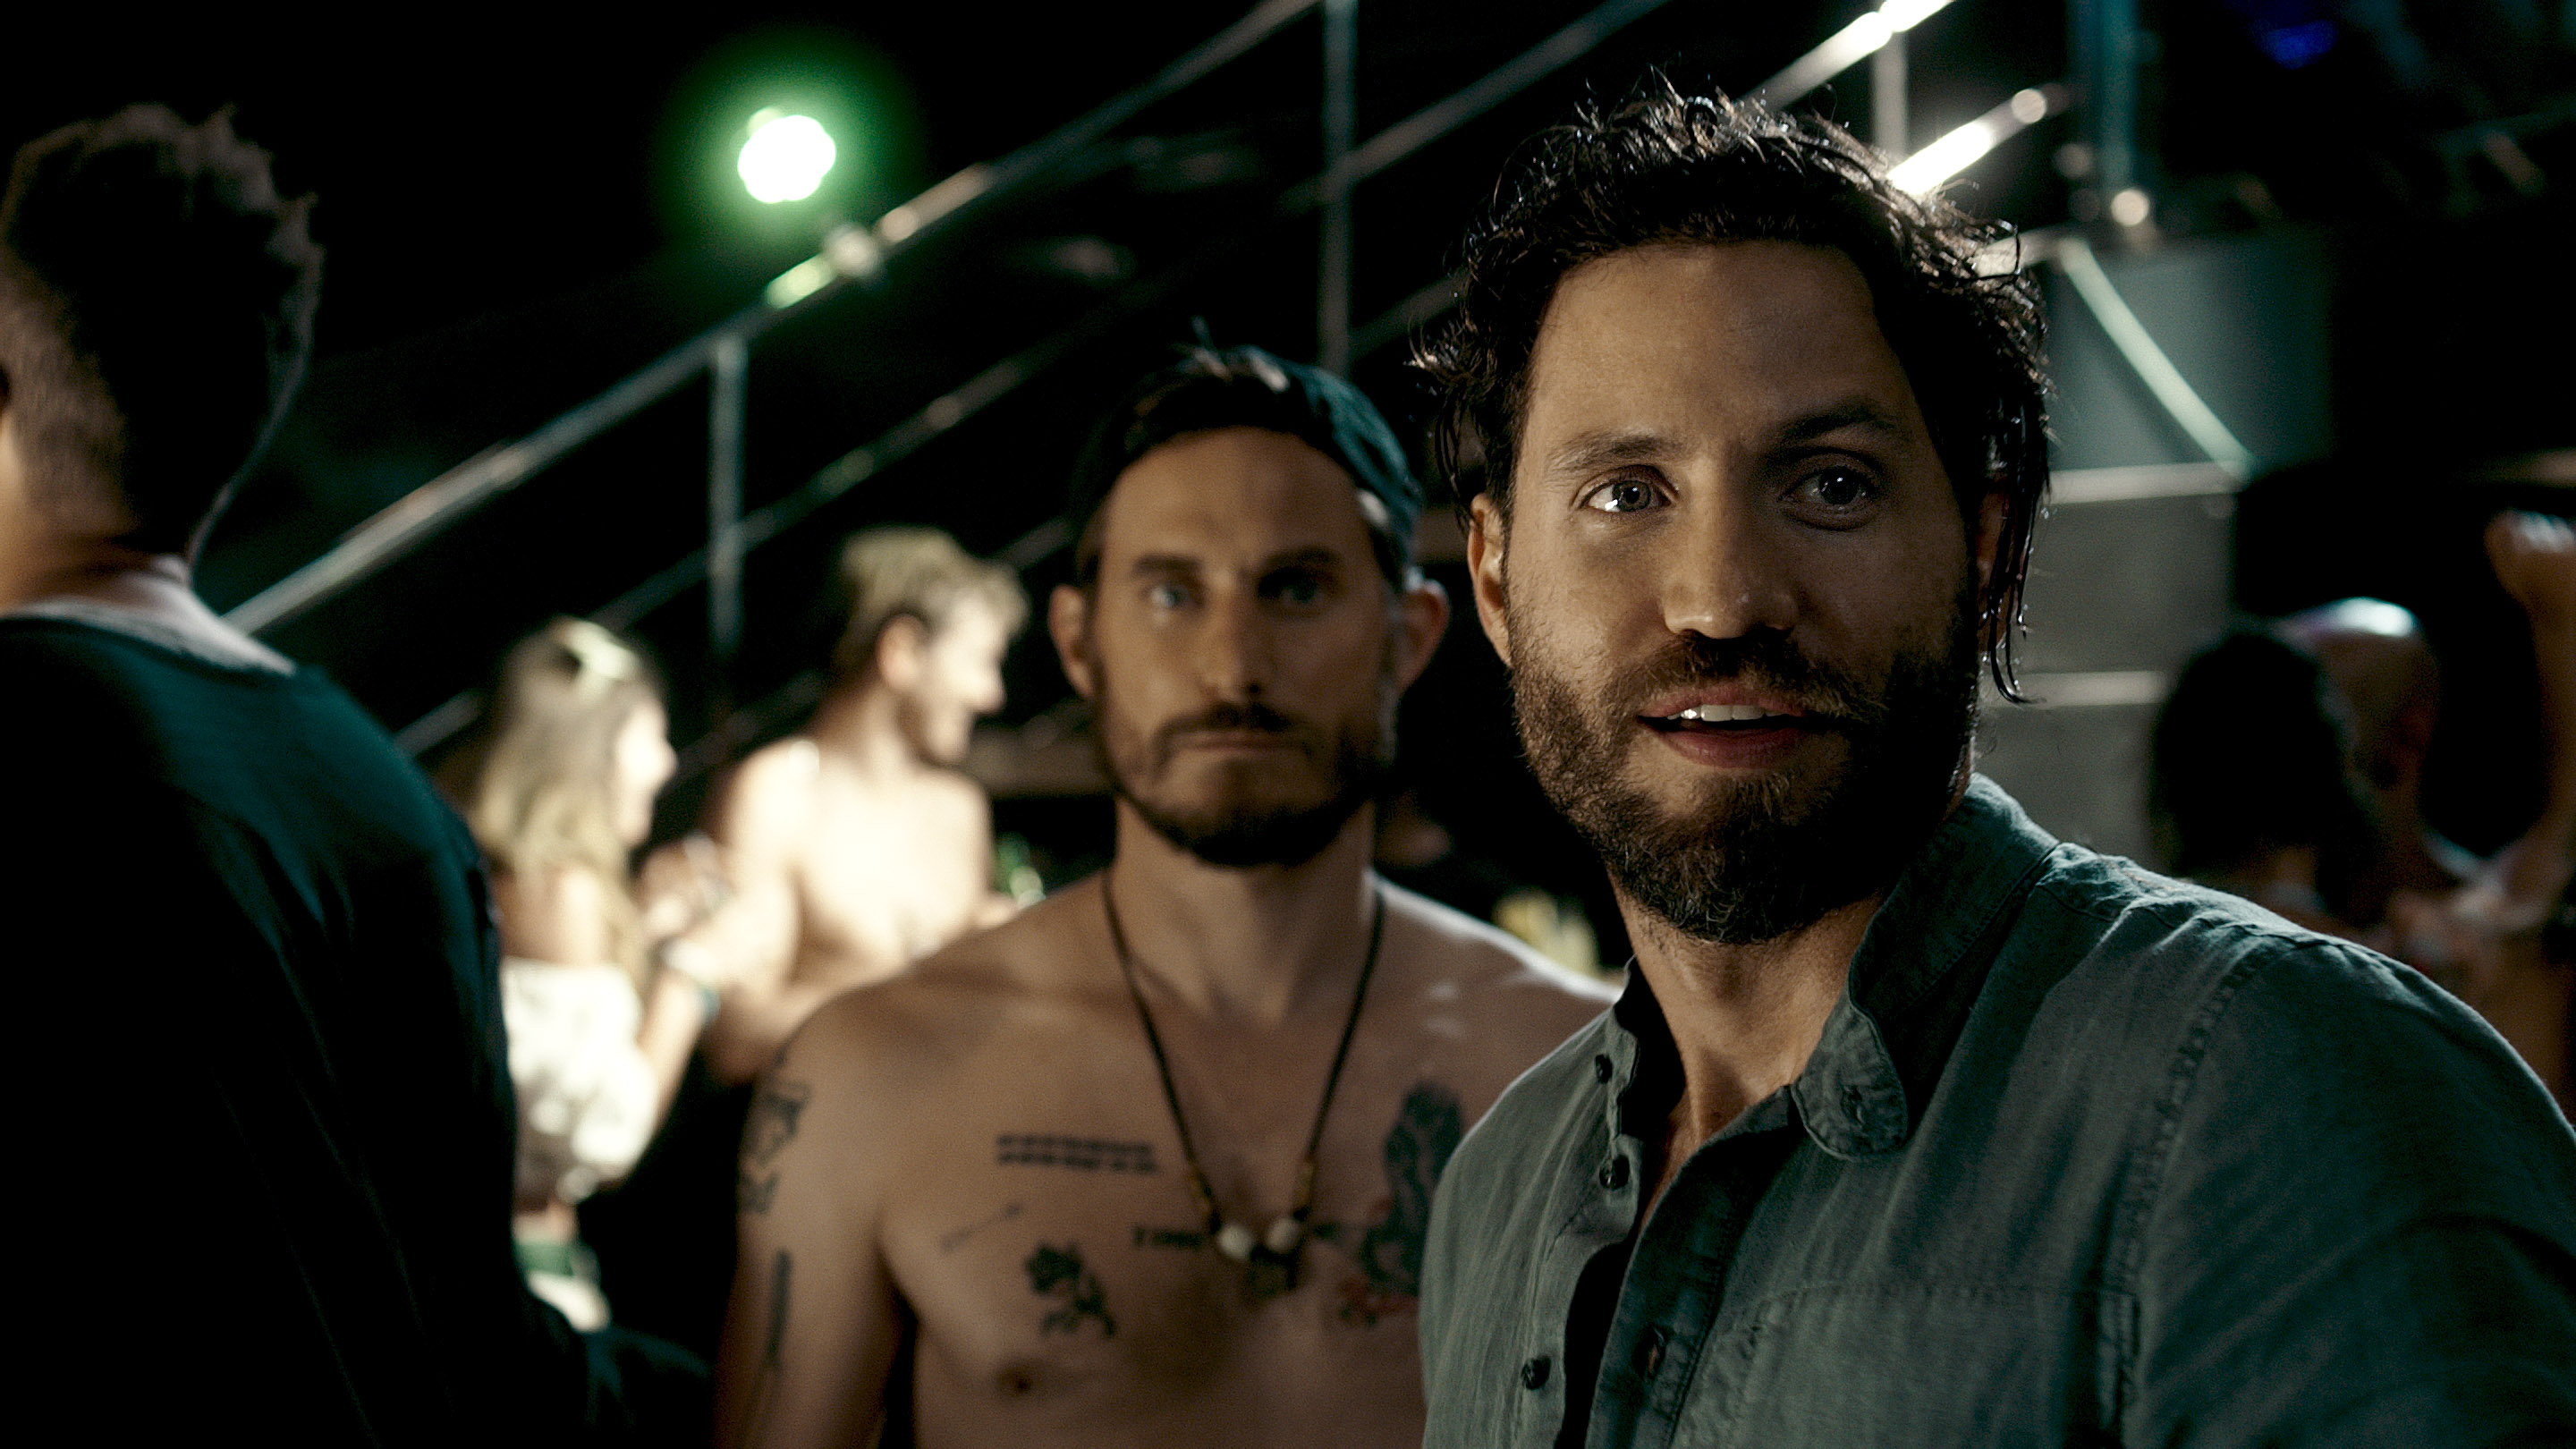 Bodhi Point Break Edgar Ramirez 2880x1620